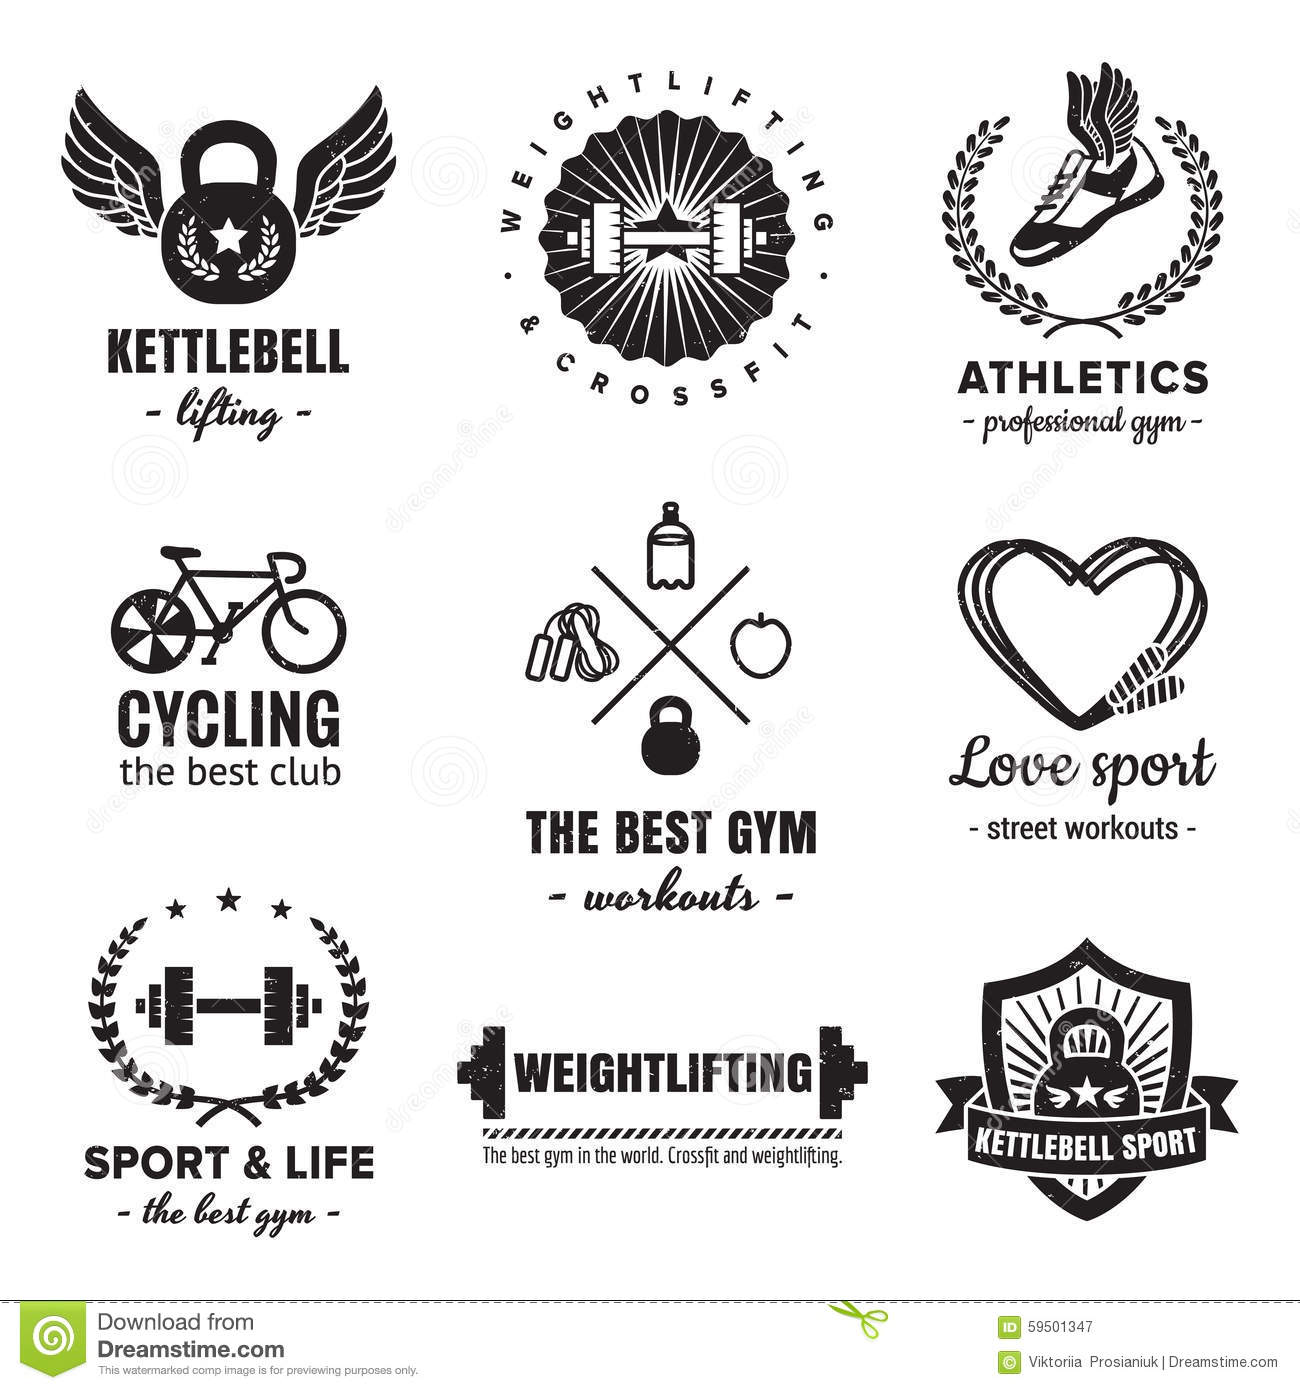 Aprenda Fazer O Burpee Crossfit 14691521 together with Rxs Crossfit Rig together with Kids Wod furthermore Folding Squat Rack likewise Stock Illustration Sport Fitness Logos Vintage Vector Set Hipster Retro Style Perfect Your Business Design Image59501347. on crossfit